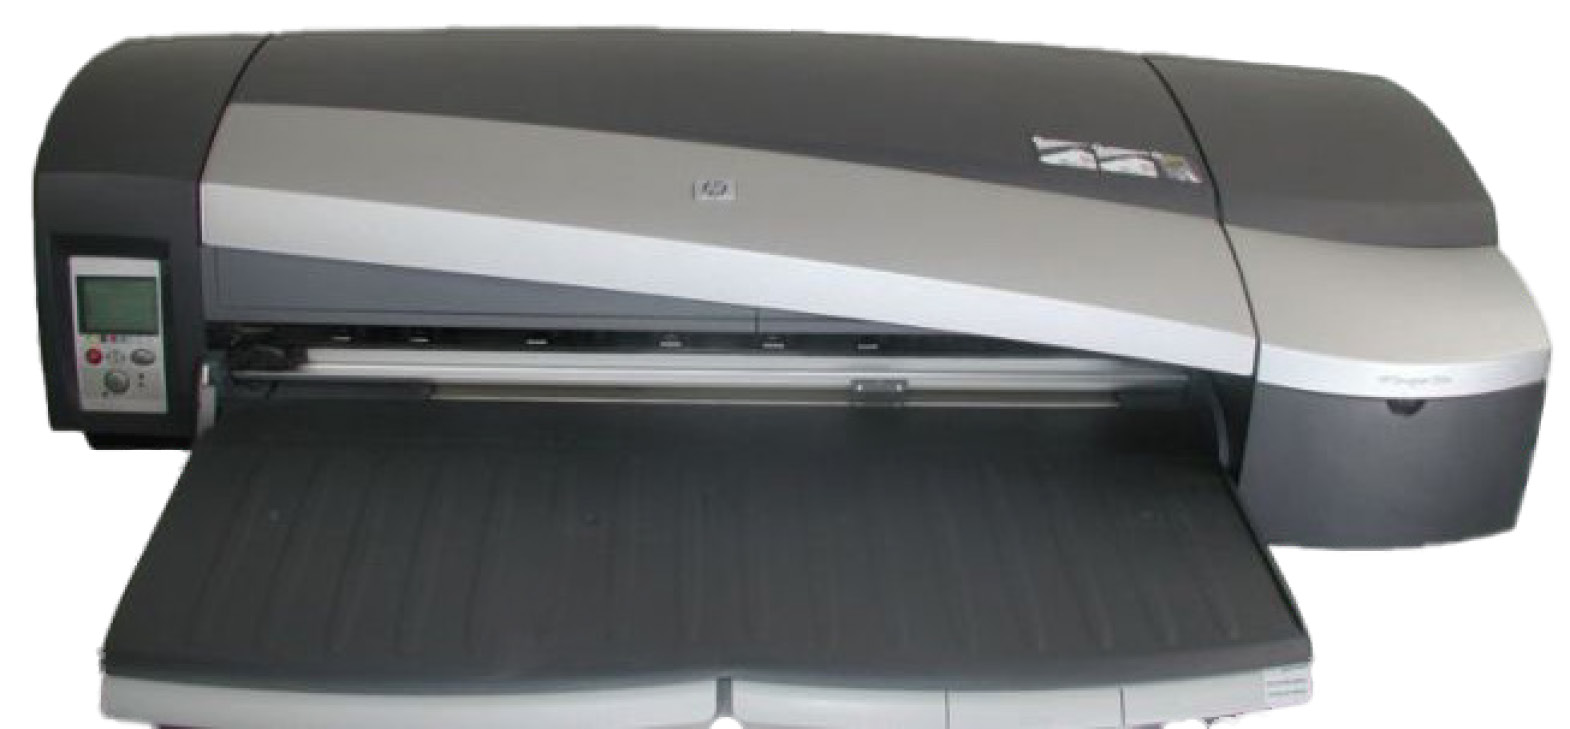 Inkjet printer used for printing artwork for pad printer